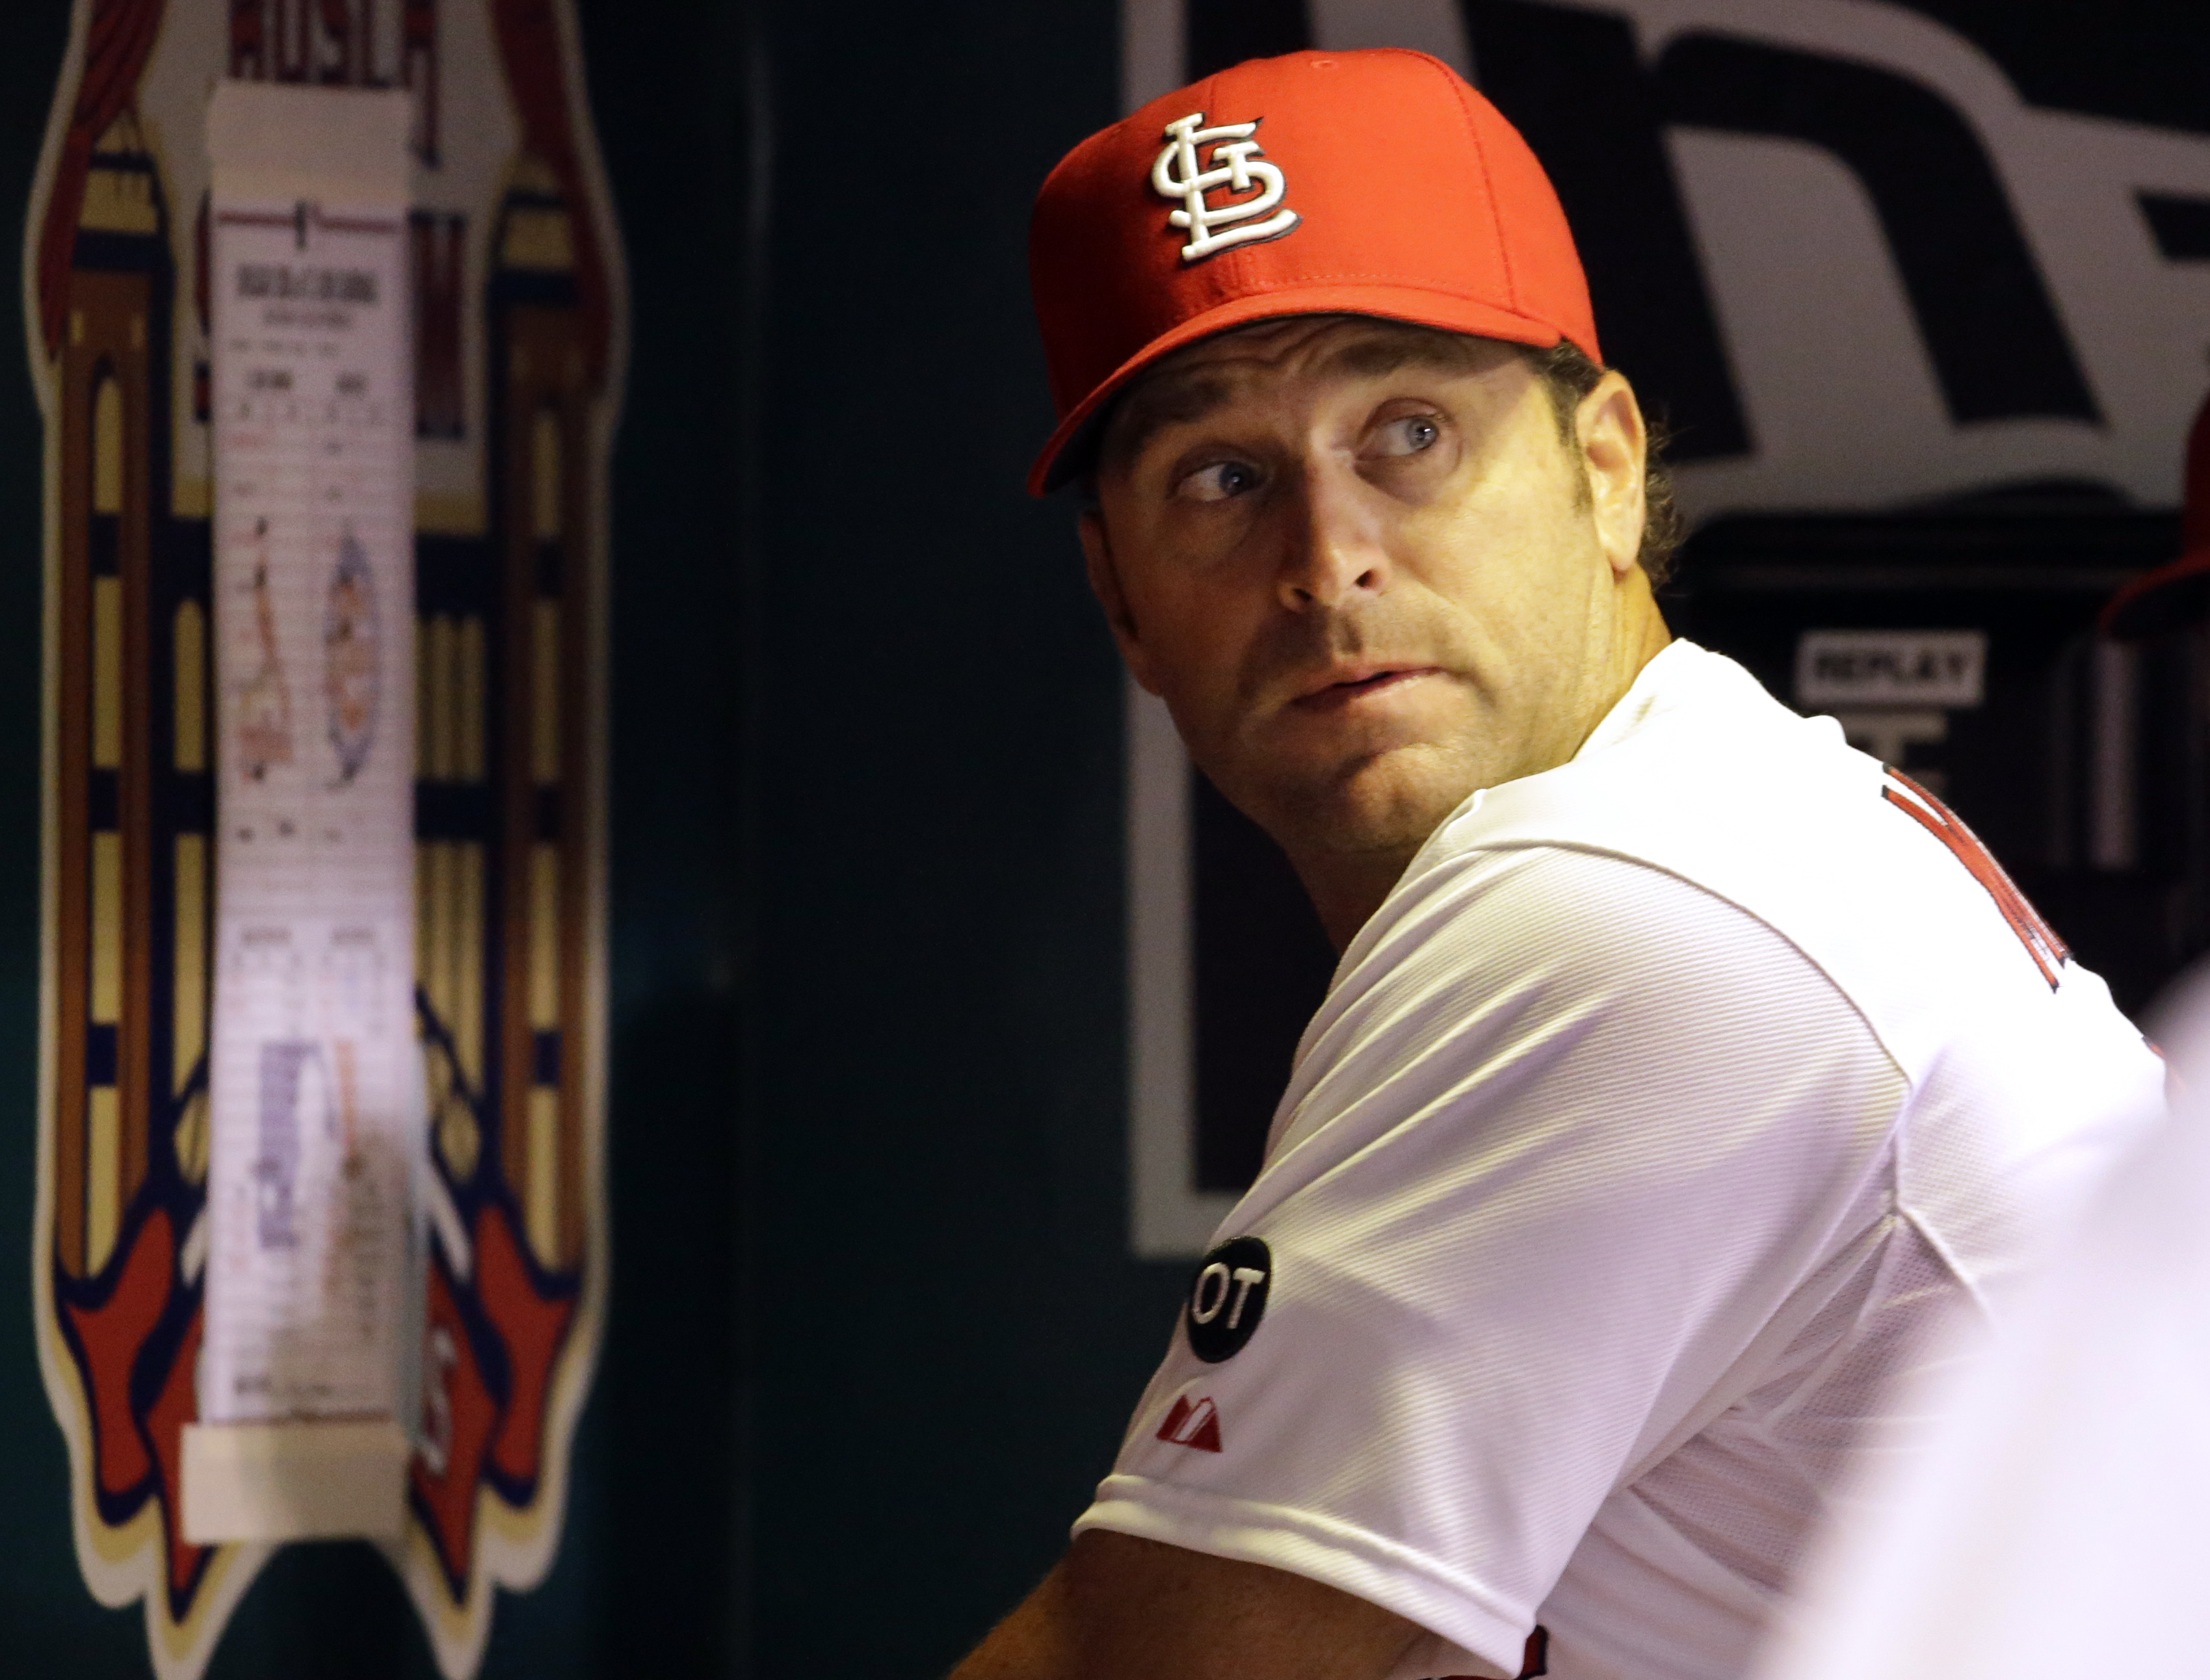 St. Louis Cardinals manager Mike Matheny looks over his shoulder toward the field after looking at a line-up card taped to the dugout wall during the fourth inning of the Cardinals' baseball game against the Chicago Cubs on Tuesday, Sept. 8, 2015, in St.